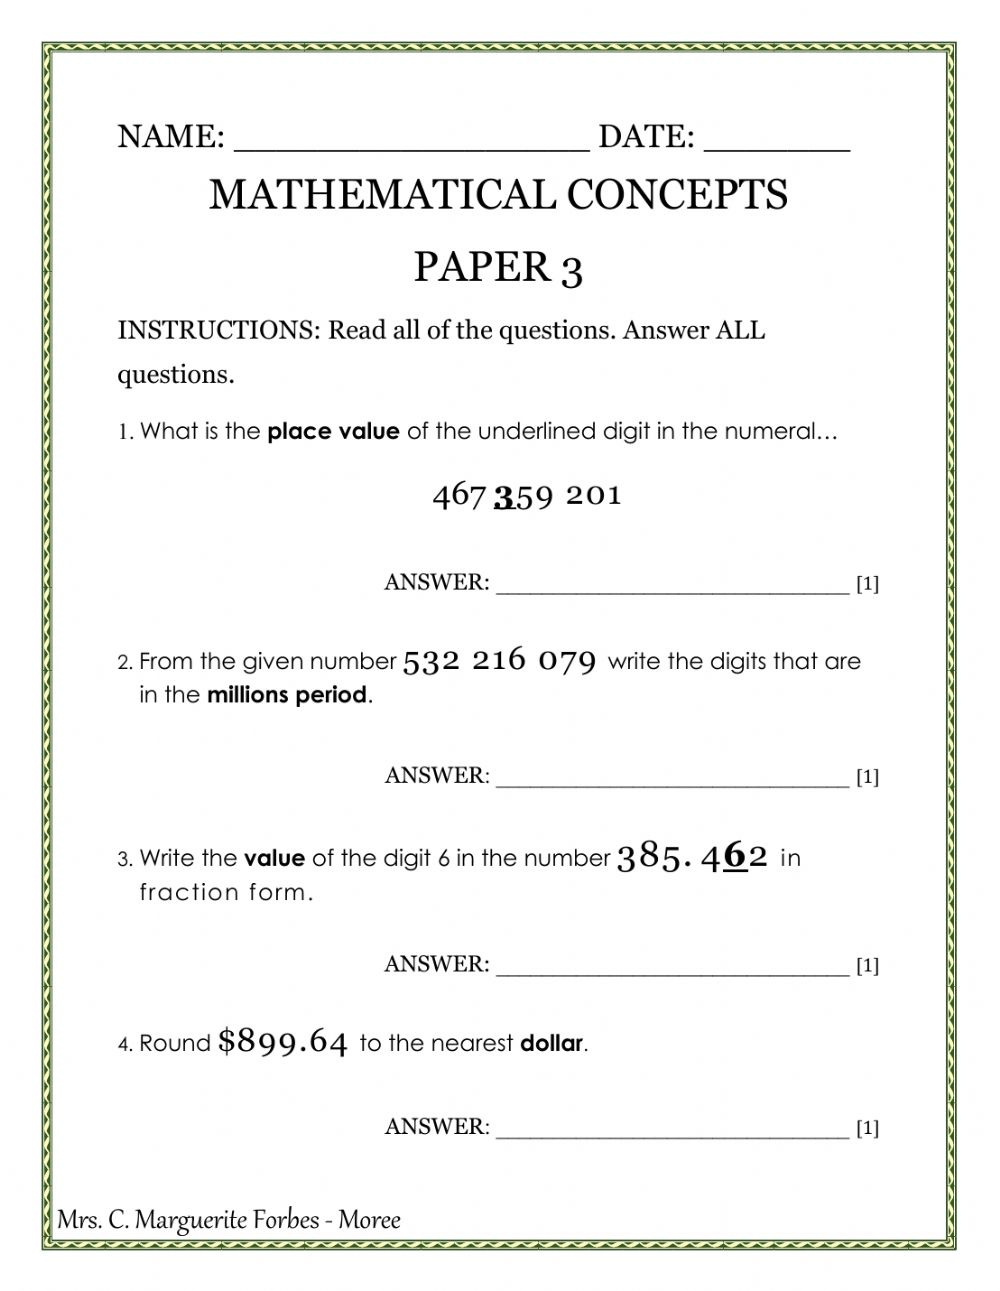 Mathematical Concepts Paper 3 Worksheet